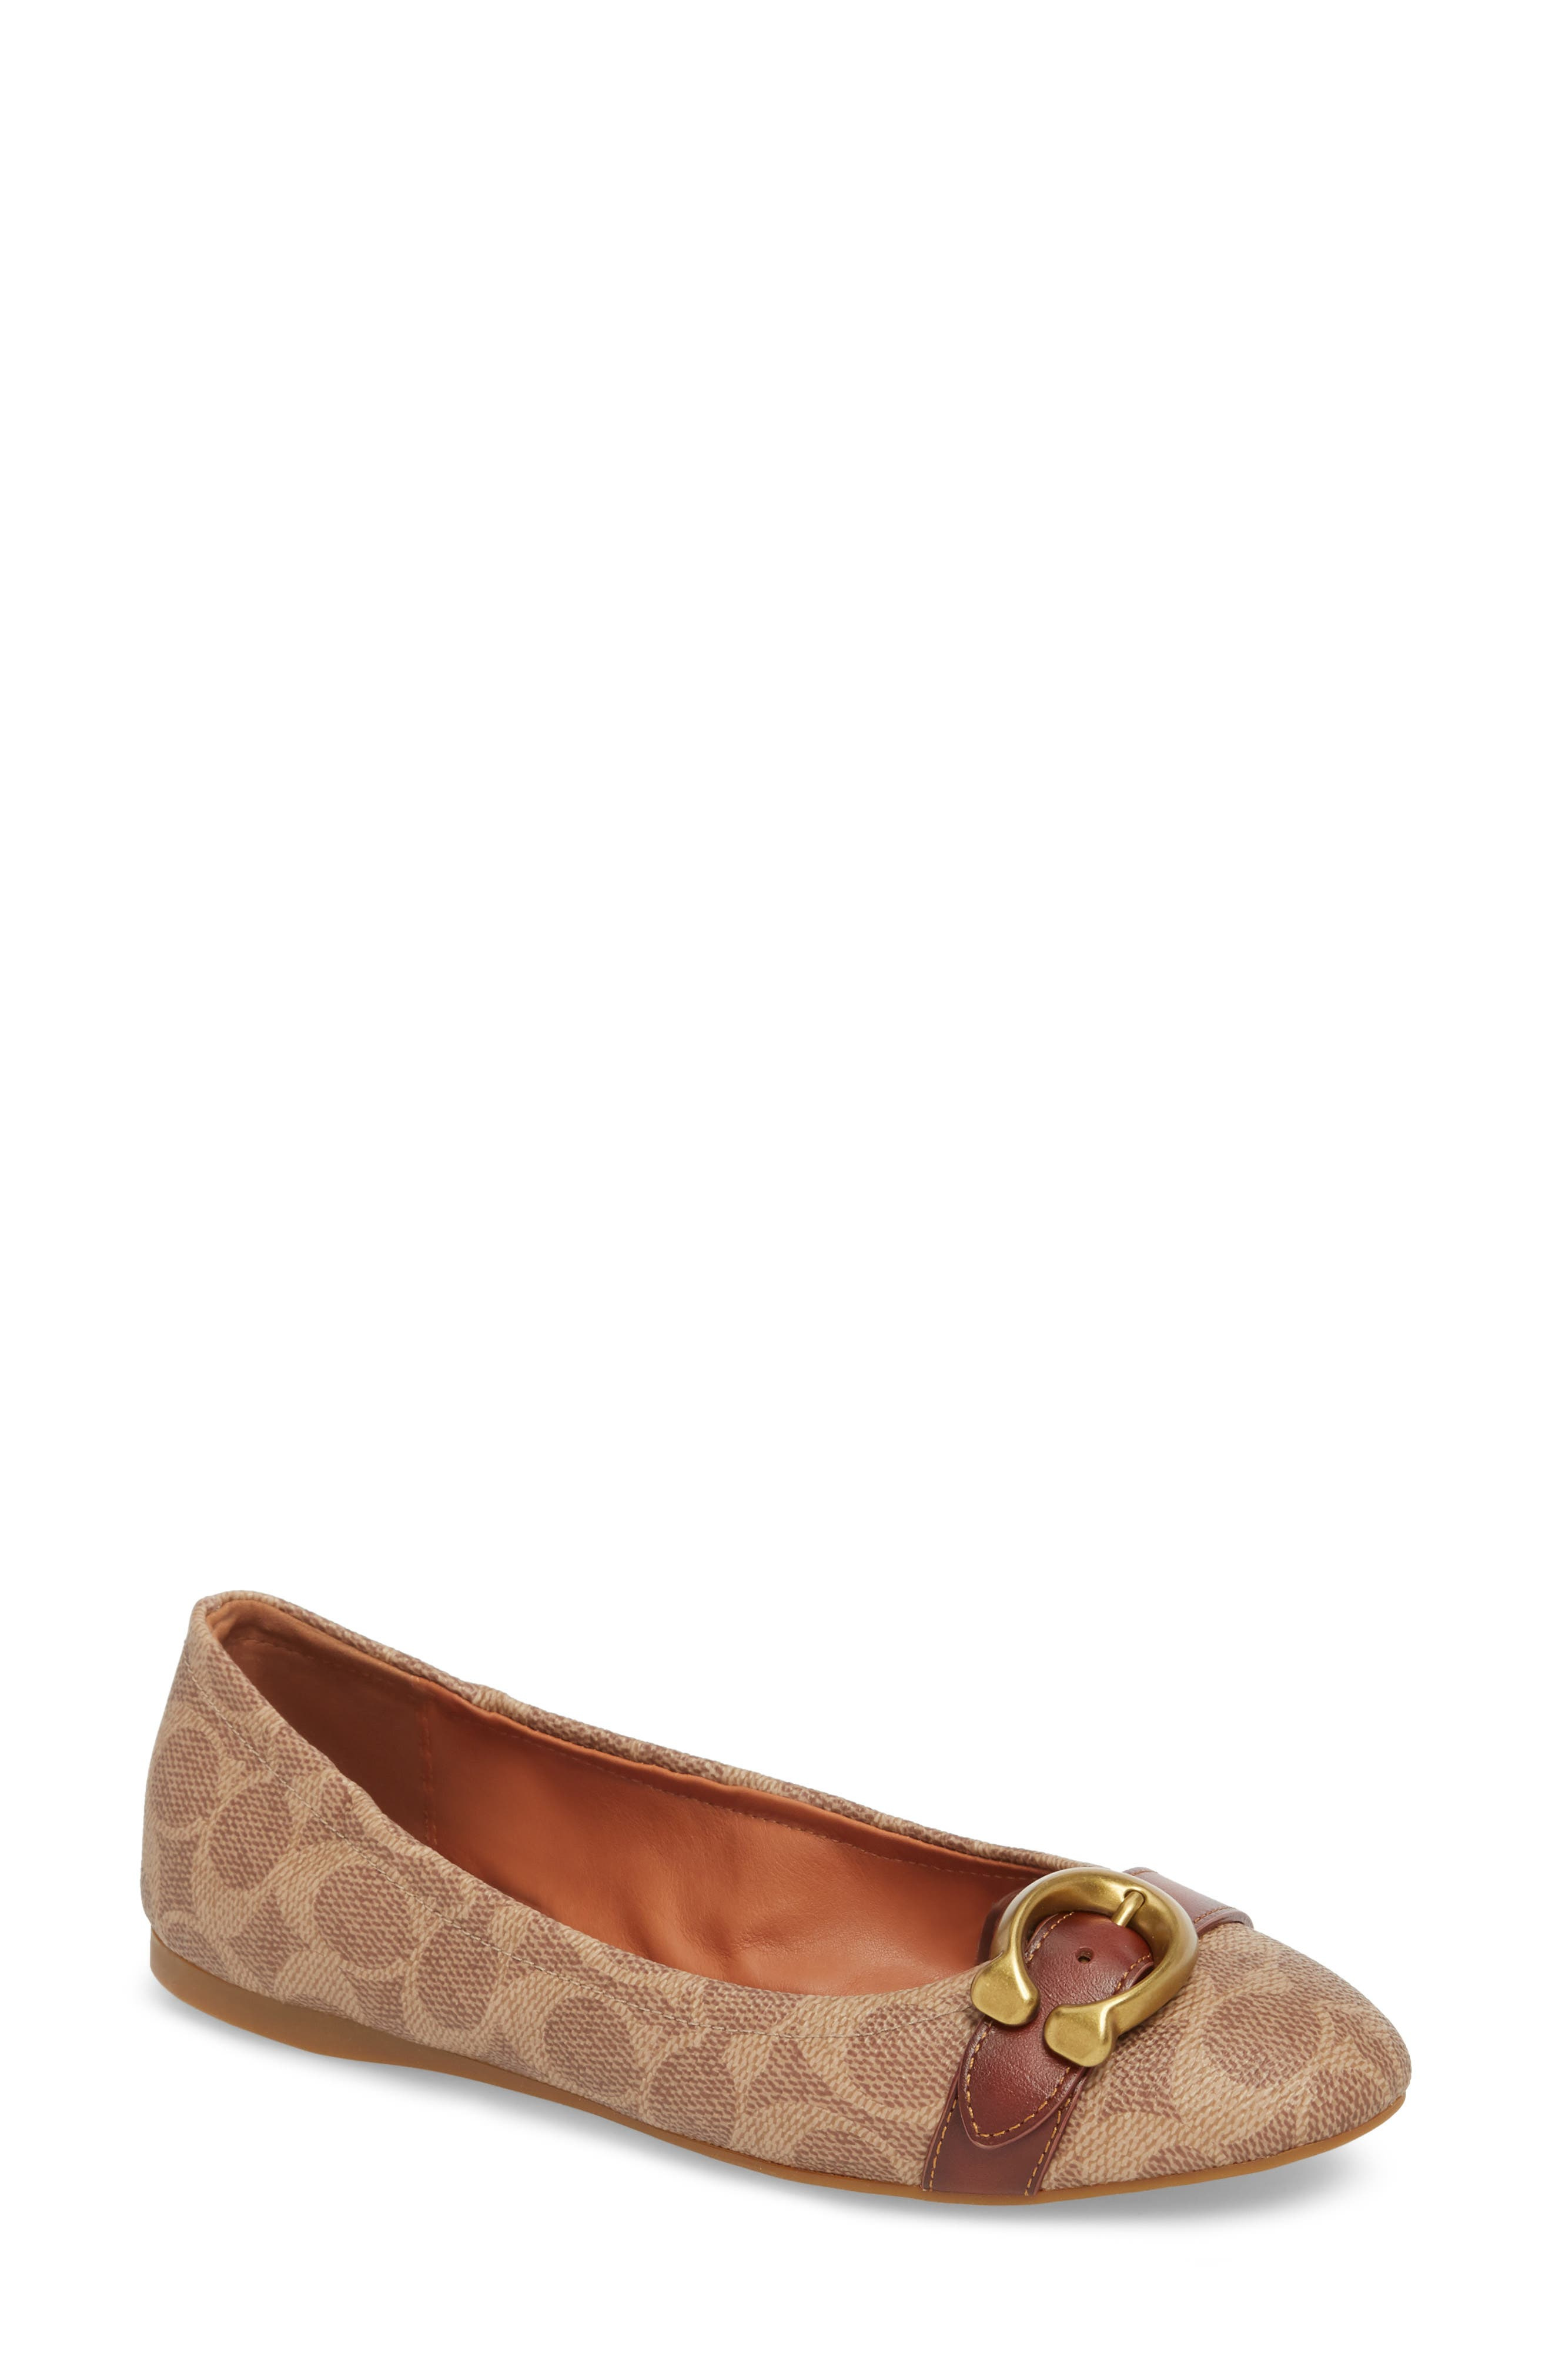 COACH, Stanton Buckle Flat, Main thumbnail 1, color, BROWN LEATHER